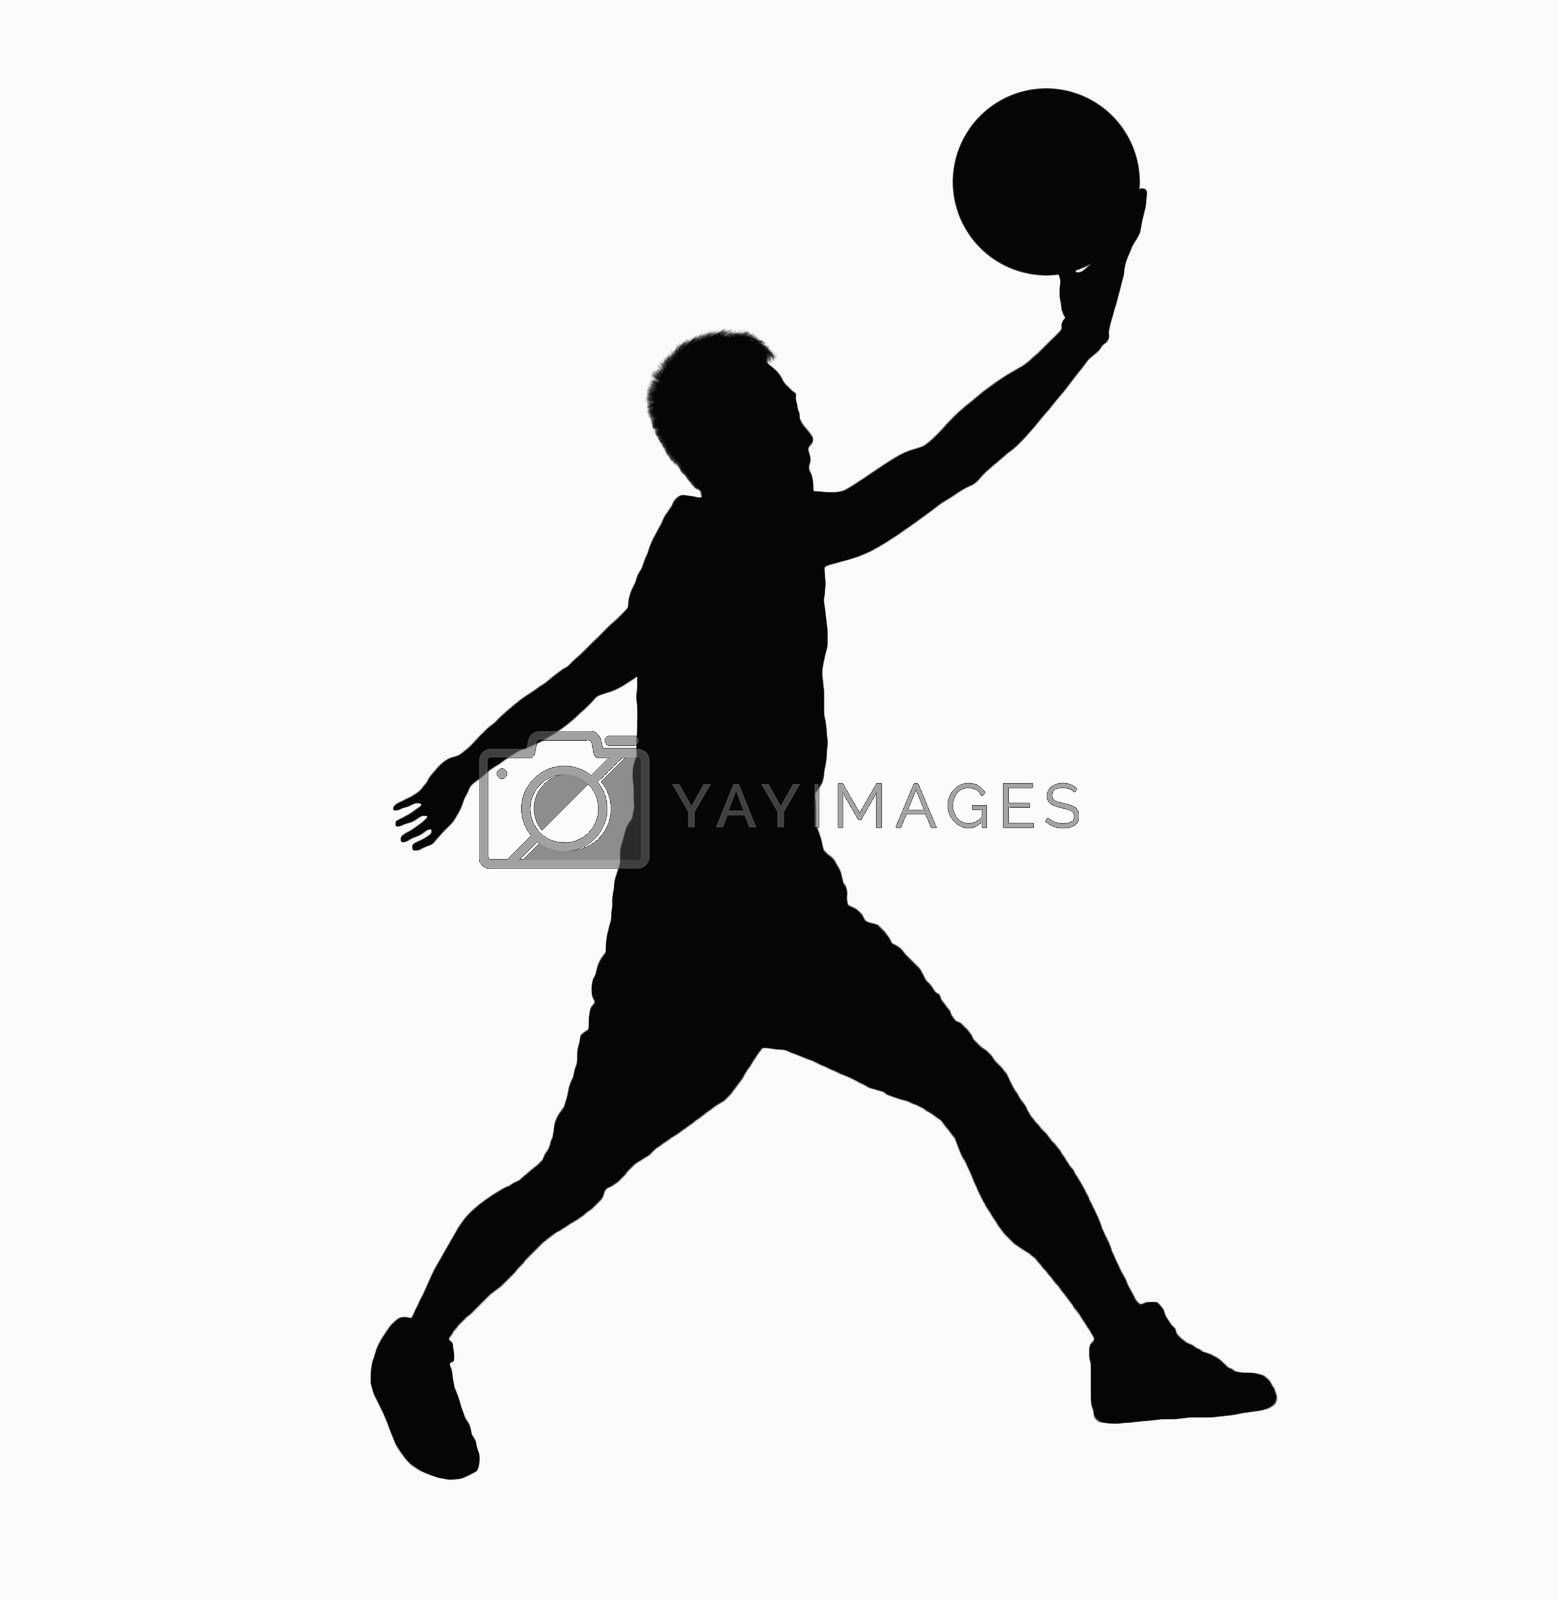 Silhouette of basketball player jumping with ball.